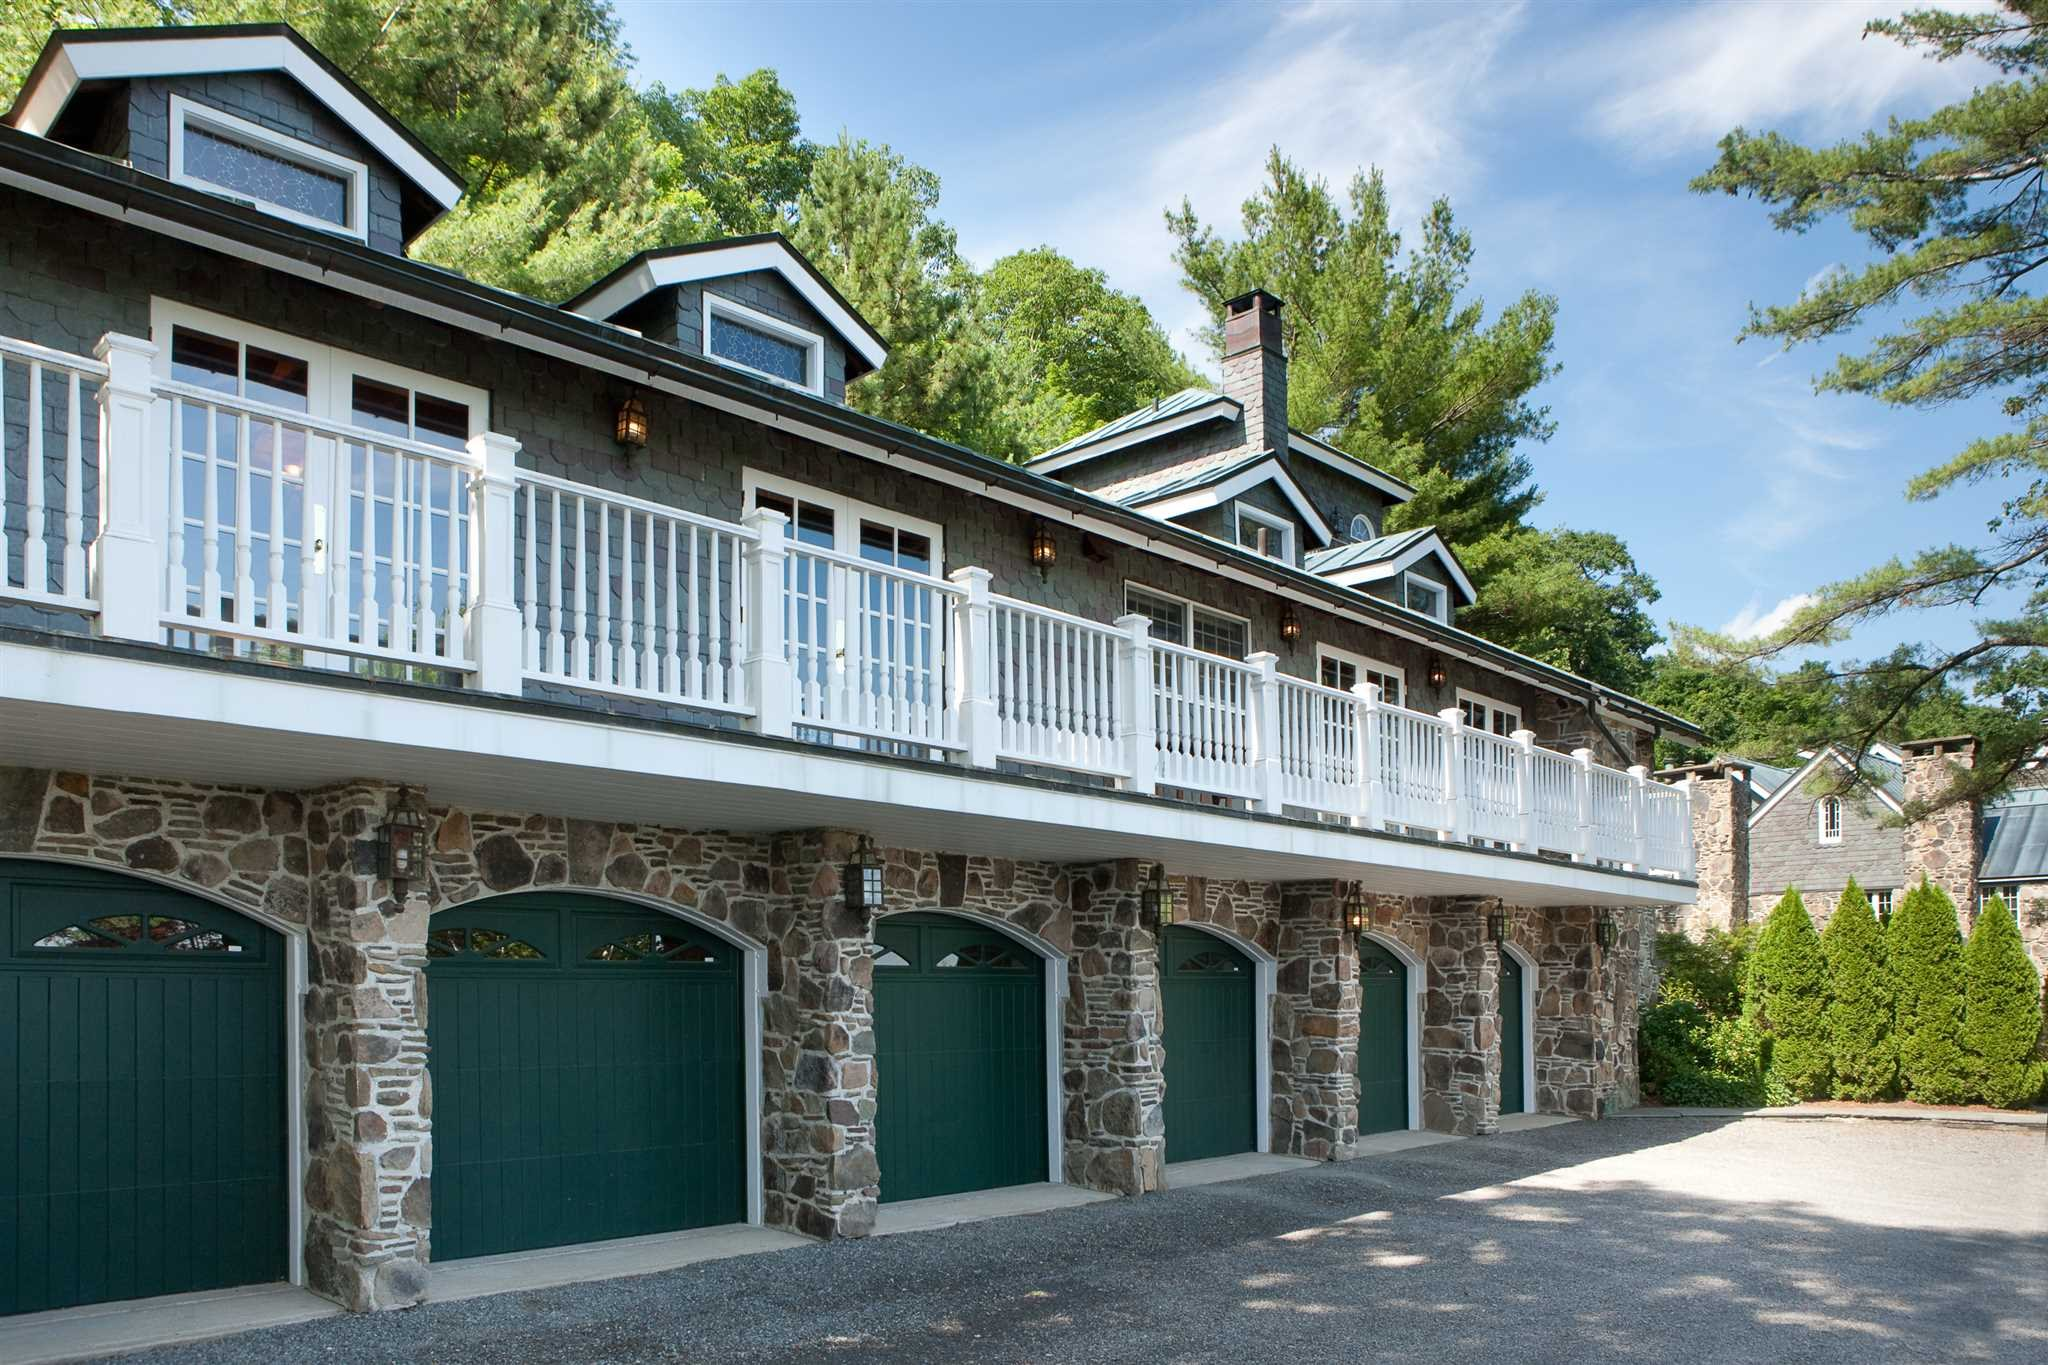 Additional photo for property listing at OHAYO MOUNTAIN Road OHAYO MOUNTAIN Road Woodstock, New York 12498 United States